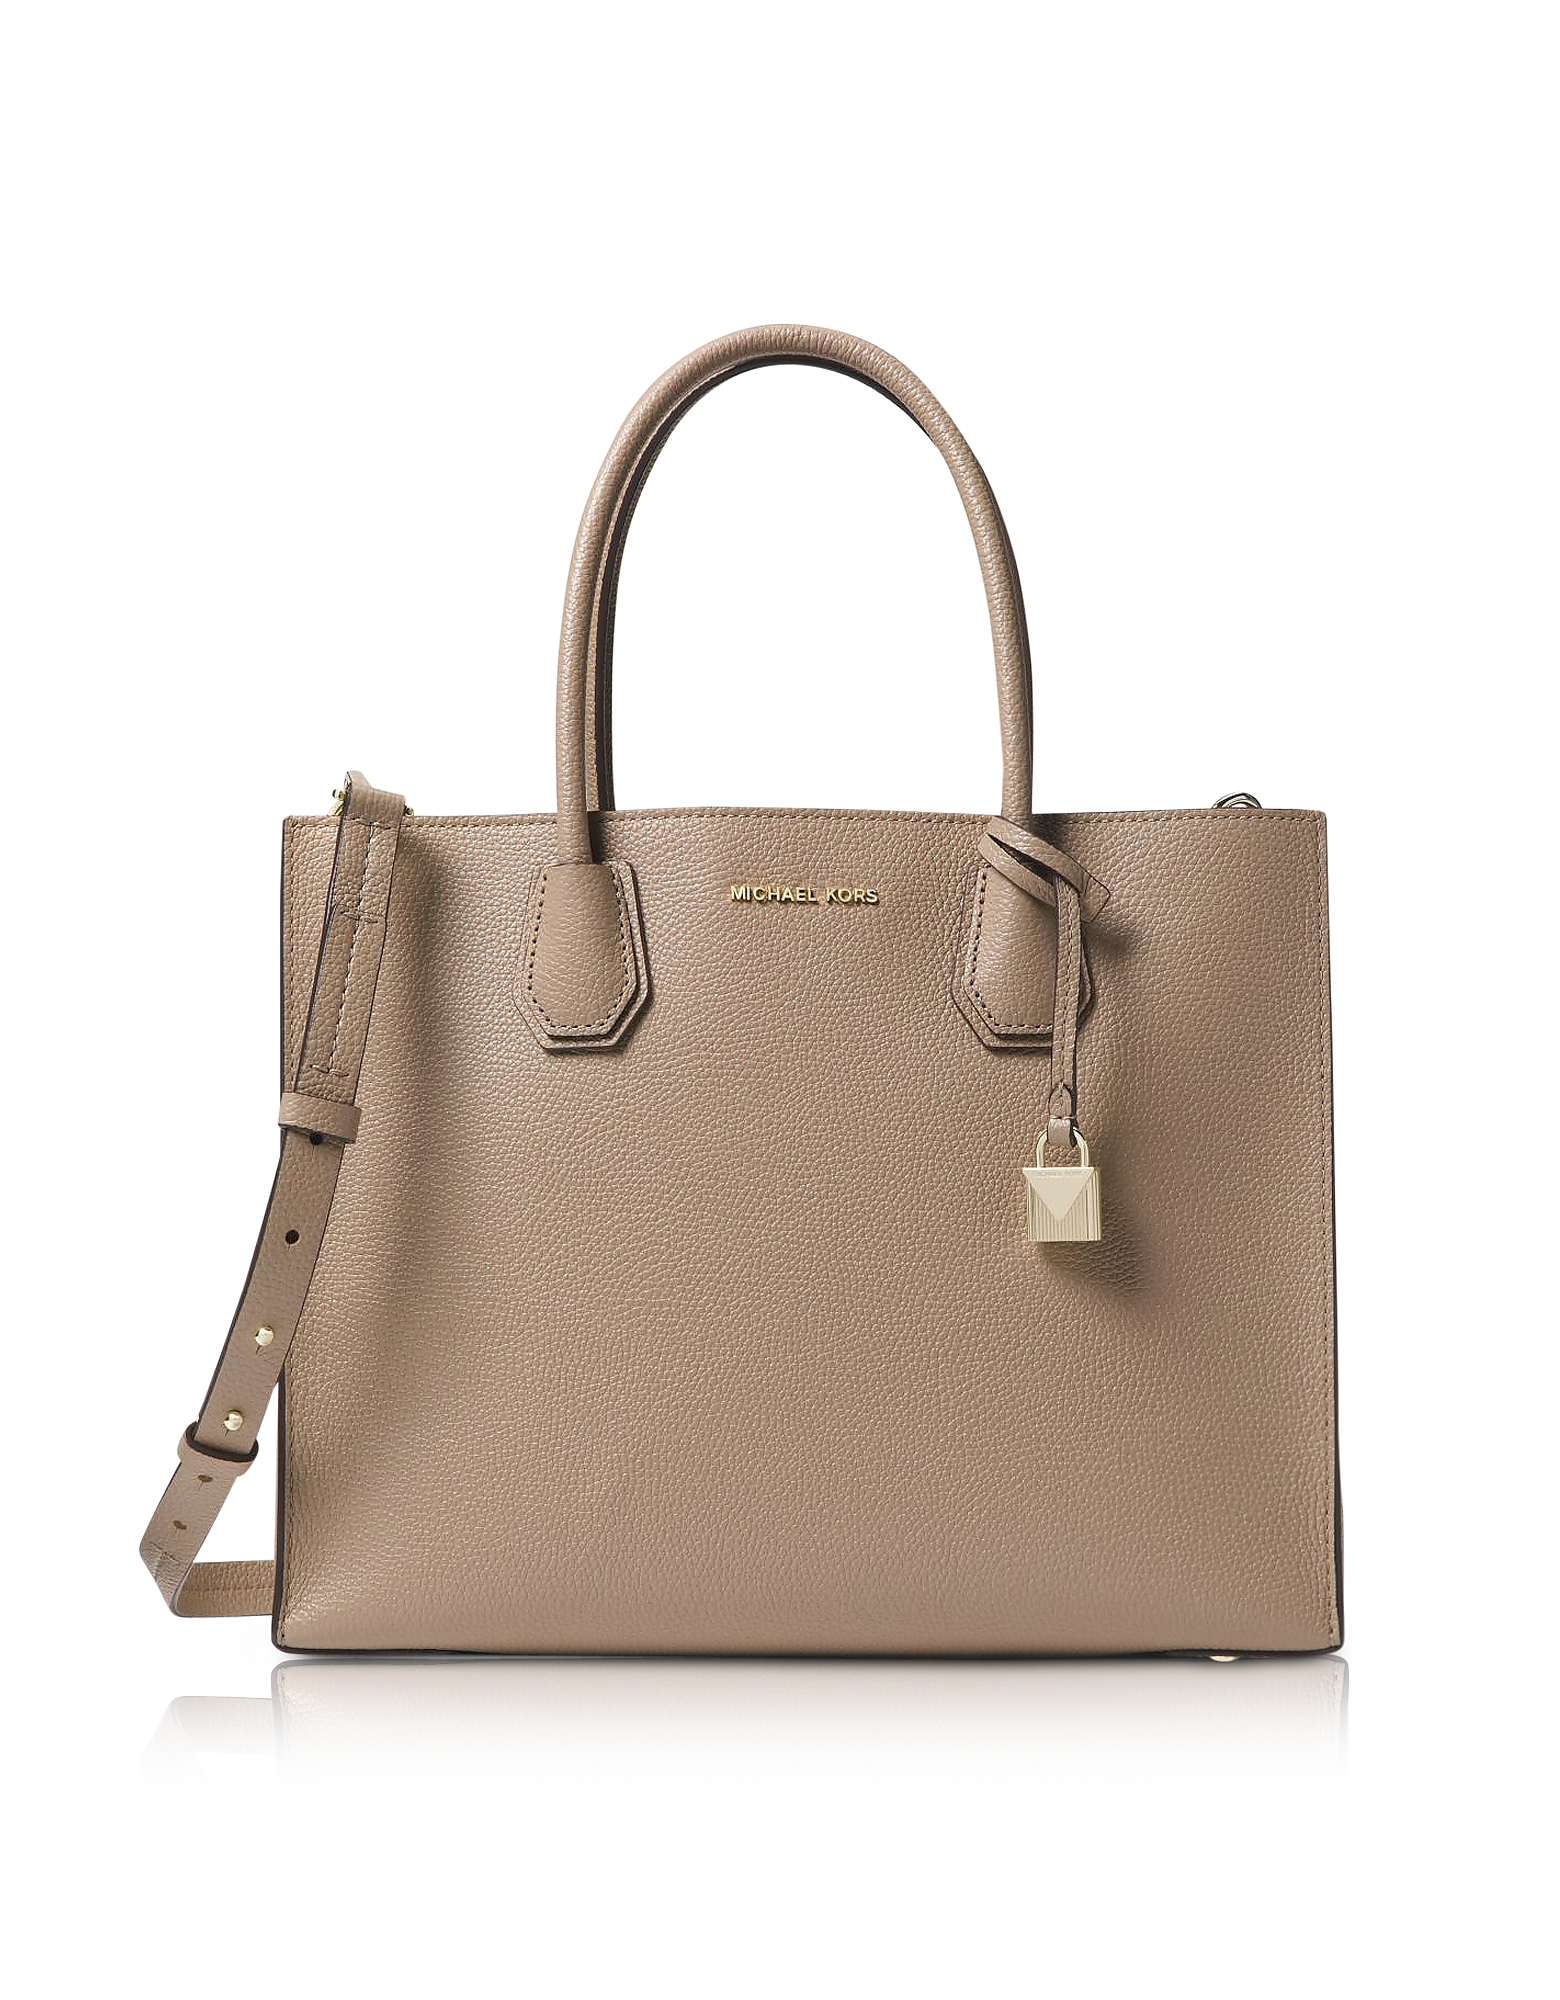 TRUFFLE MERCER LARGE LEATHER TOTE